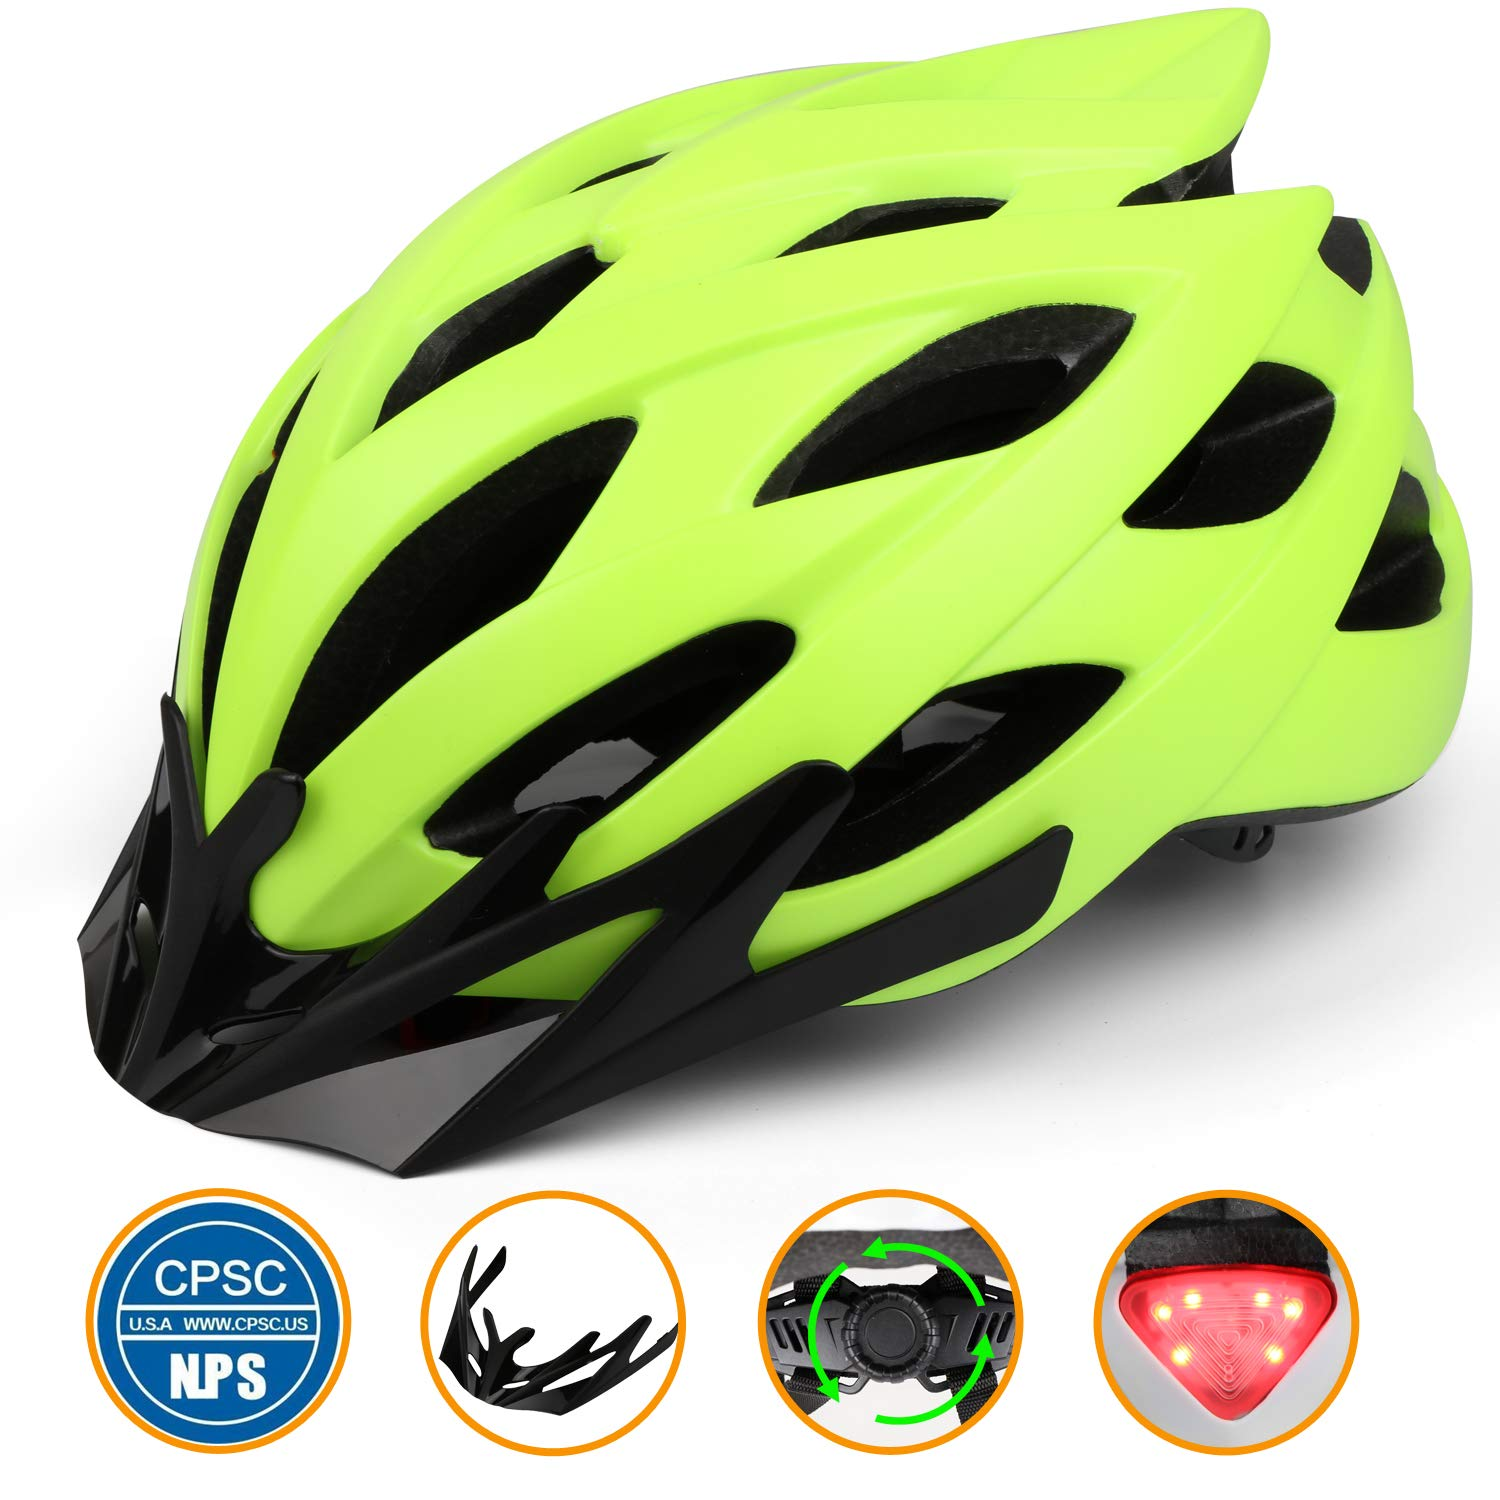 Shinmax Bike Helmet, Cycling Helmet with CPSC Safety Certified LED Safety Light Removable Visor Portable Backpack Flow Vents-Safety and Comfortable for Adult Men Women Youth Mountain Road